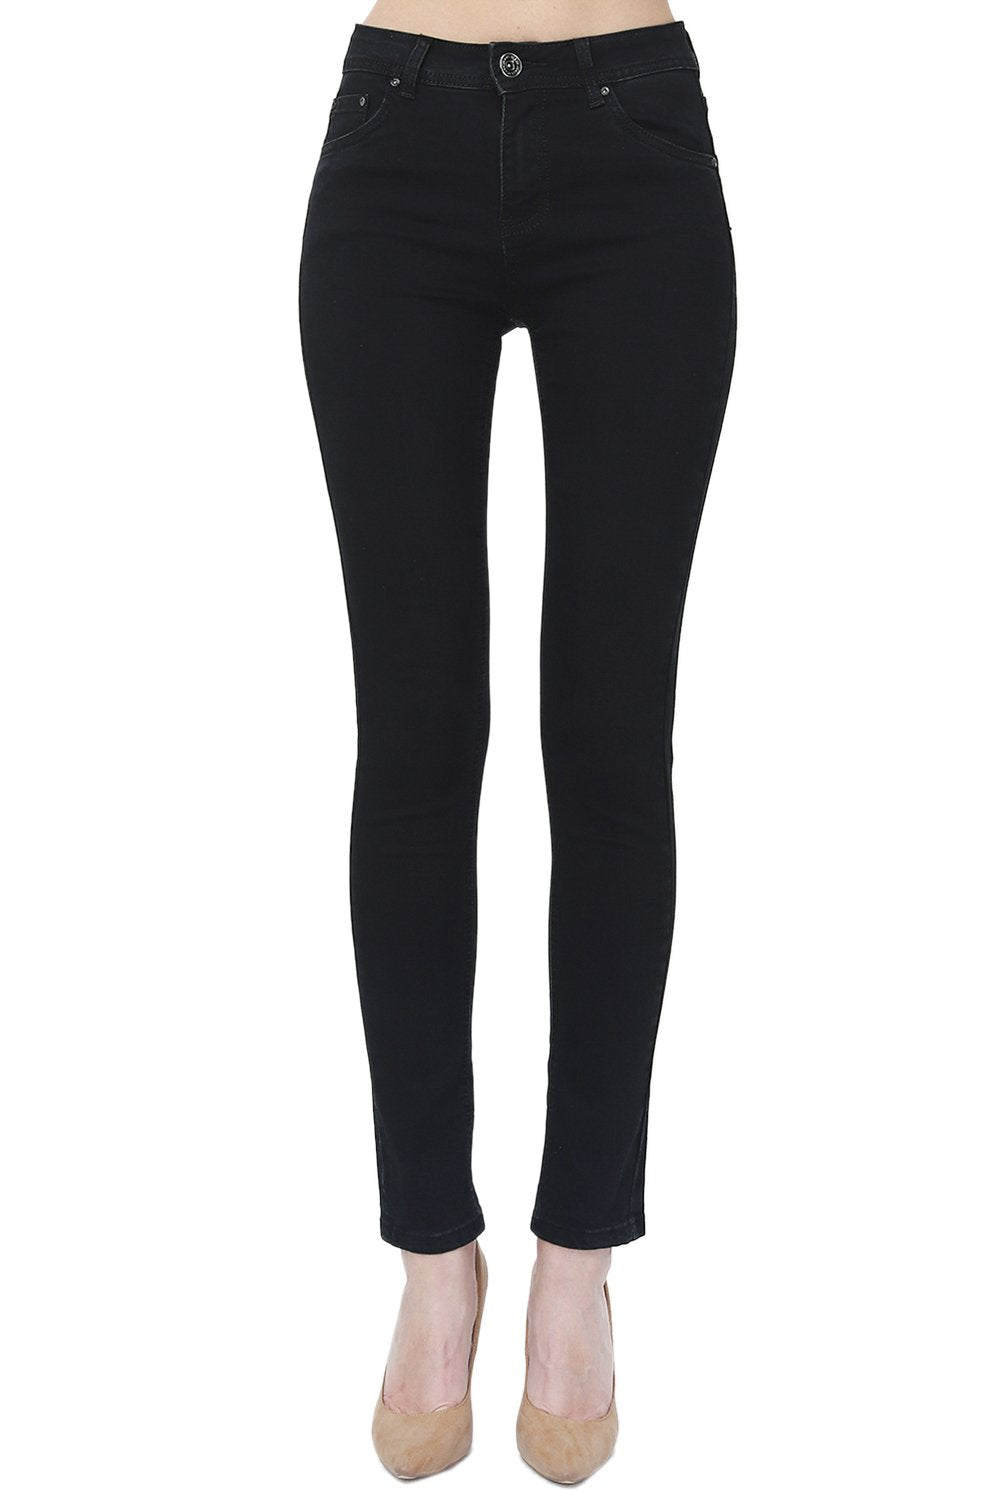 HIGH WAIST AND STRAIGHT FIT PANT